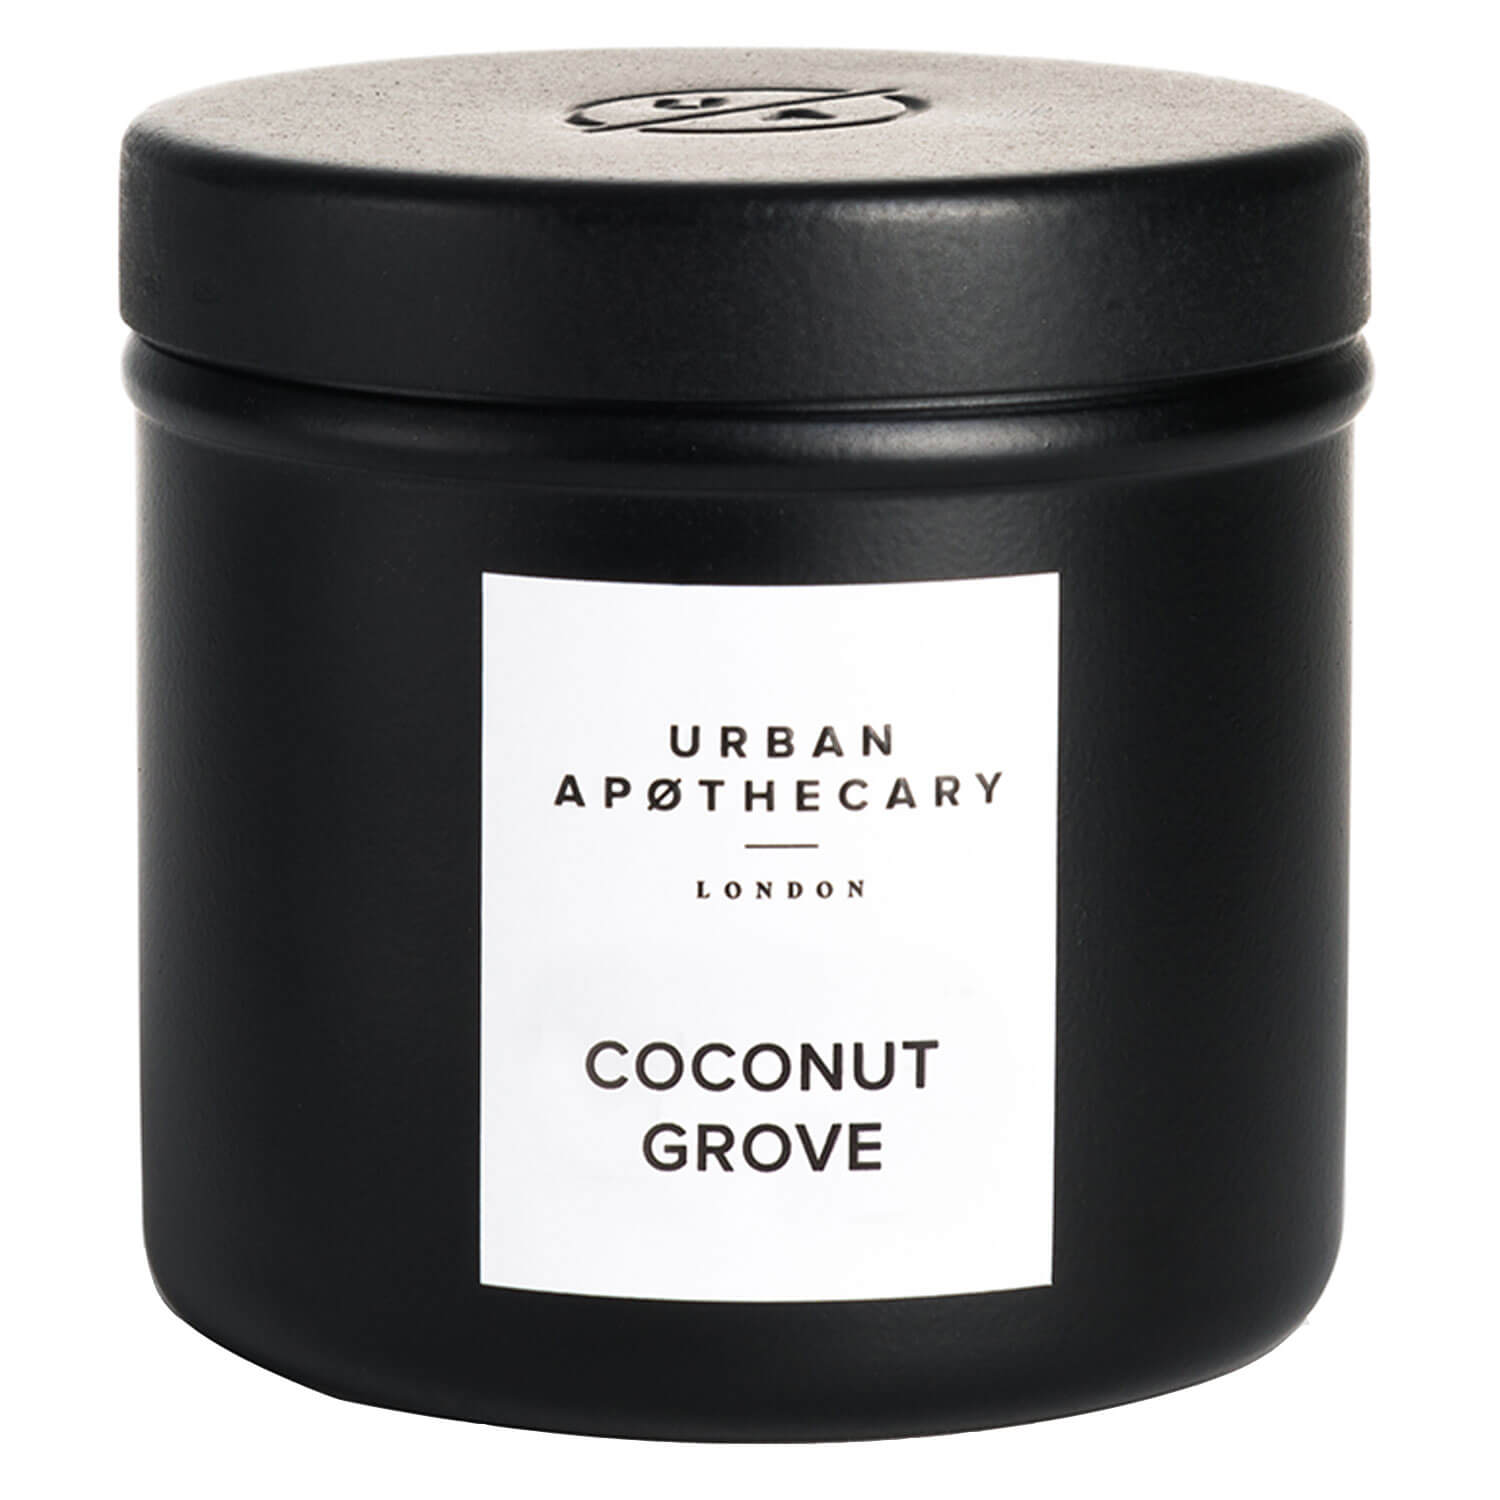 Urban Apothecary - Luxury Iron Travel Candle Coconut Grove